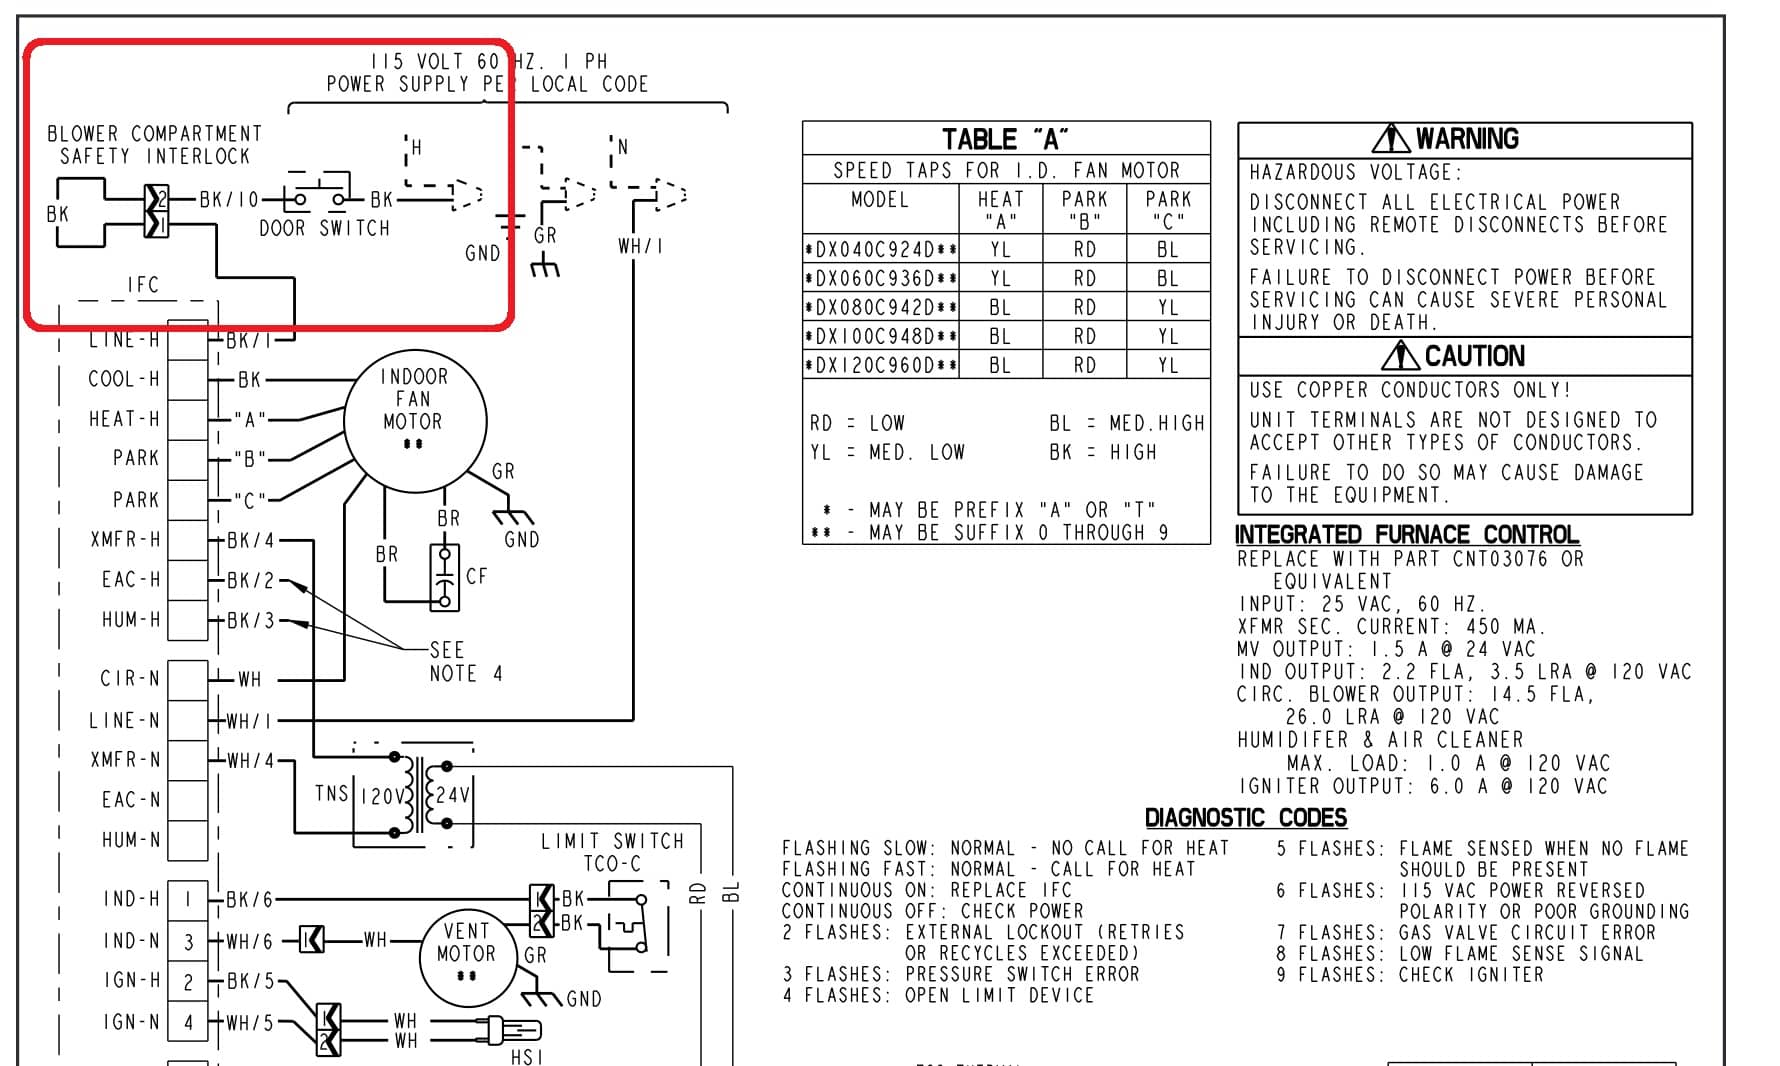 Trane_Furnace_Wiring_PARTIAL_023 trane xr90 wiring diagram trane xr90 owners manual \u2022 wiring Trane XE 80 Diagram at soozxer.org